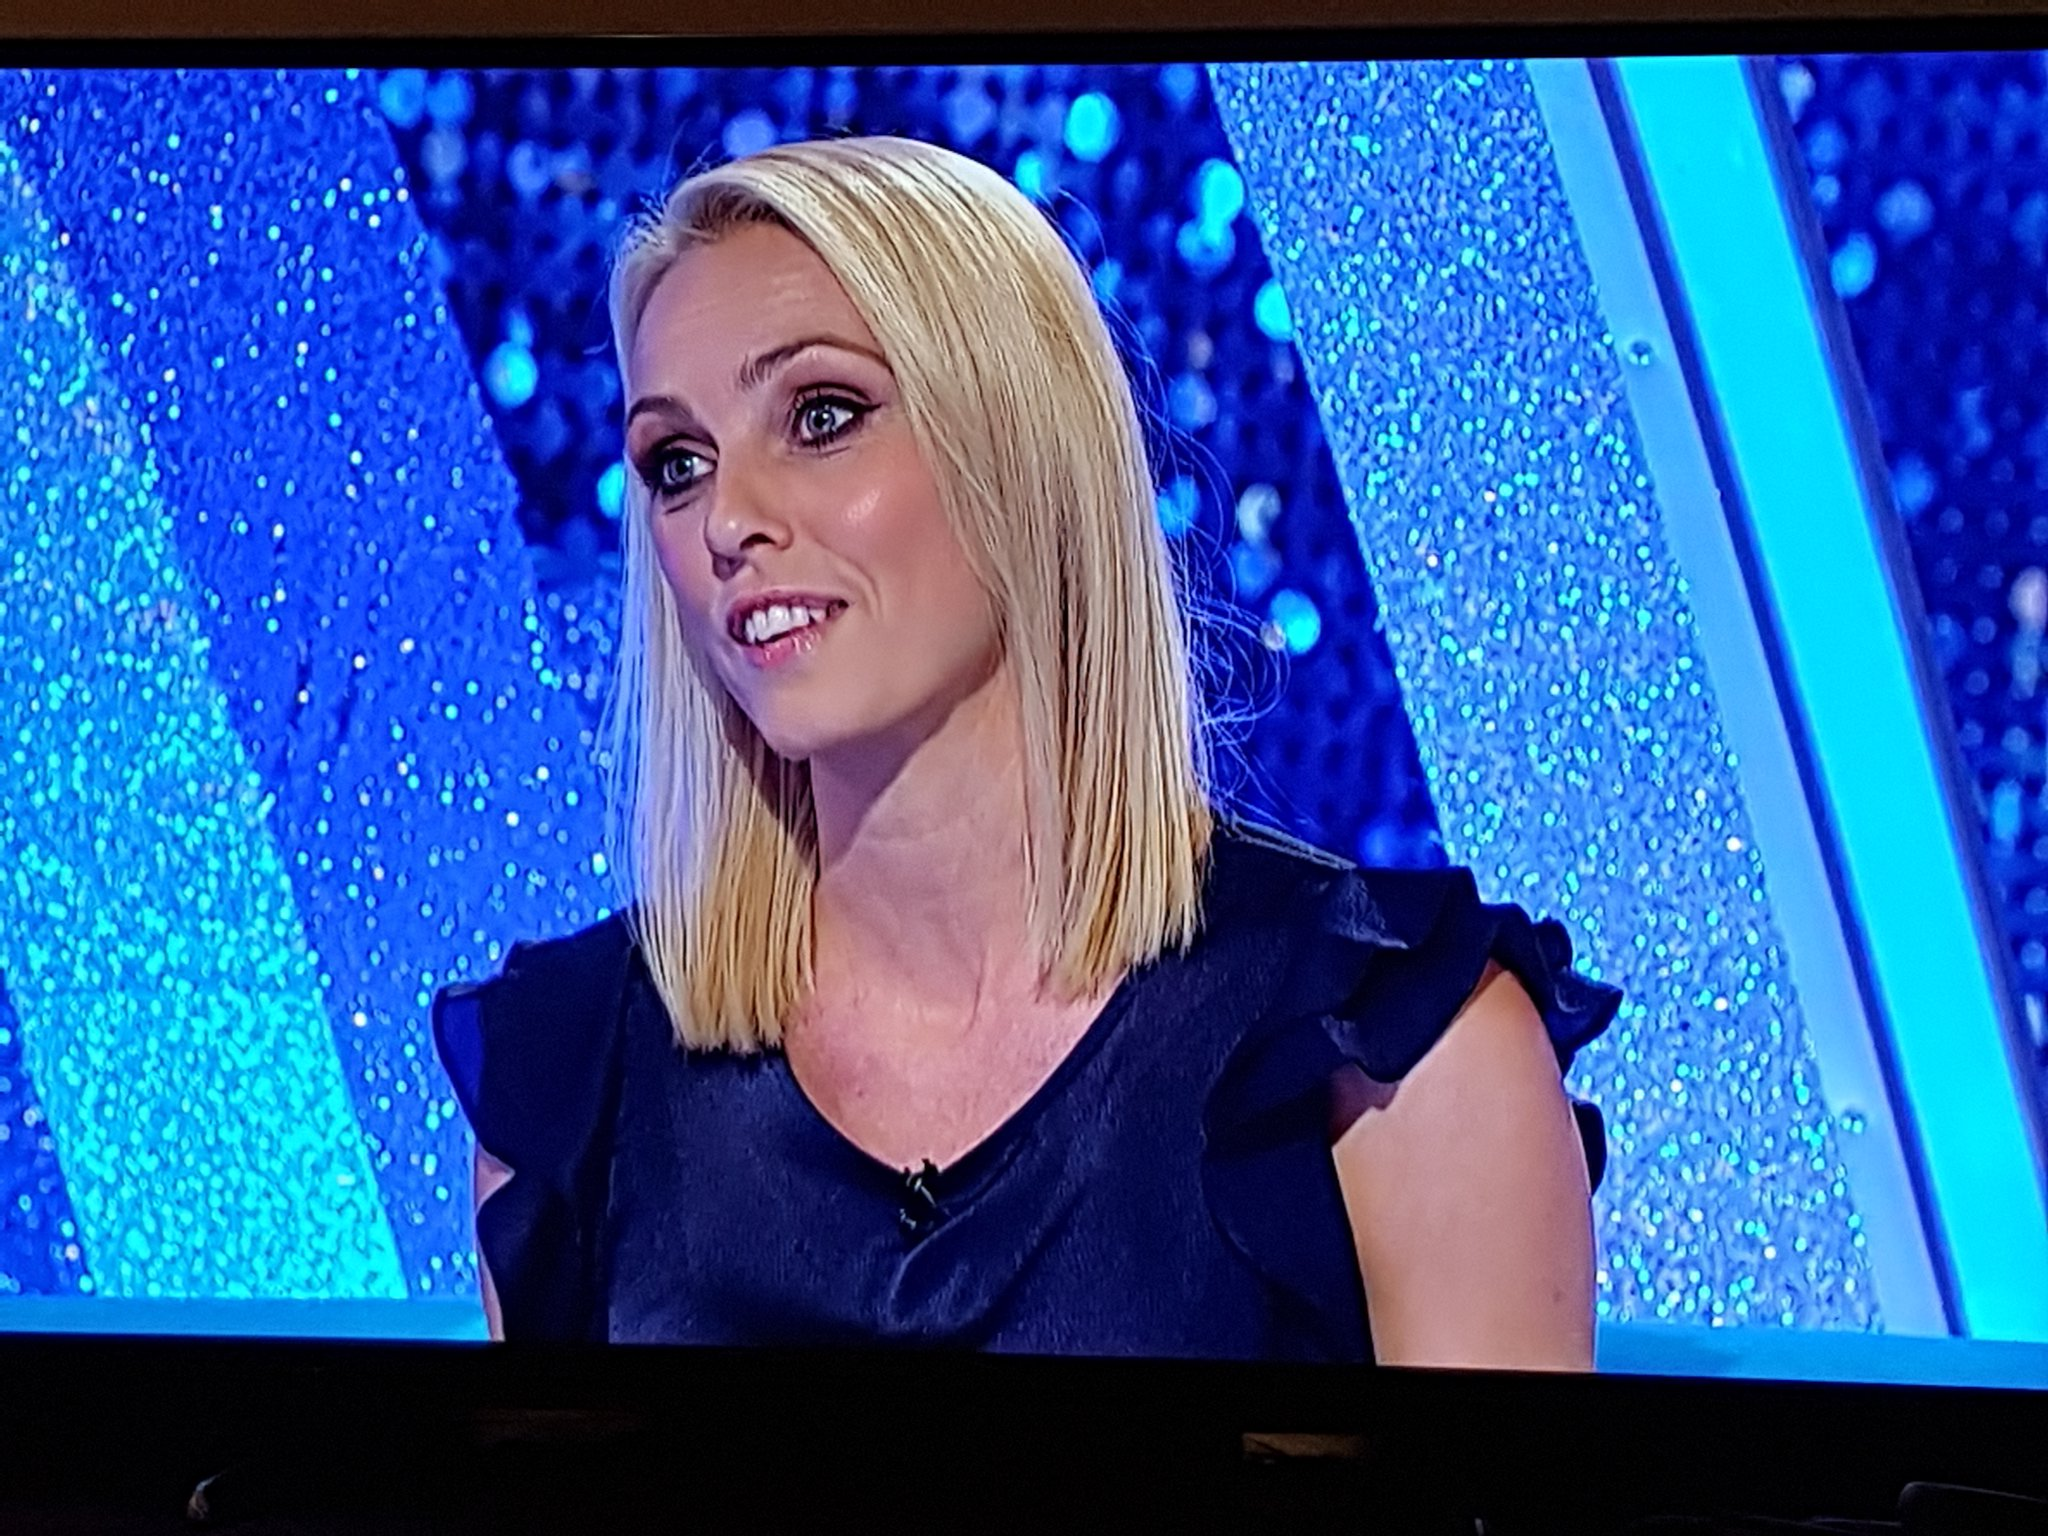 RT @Jasminestormy: #Strictly @CamillaDallerup is on it takes two. A genuinely lovely person. https://t.co/F83GBbvarR